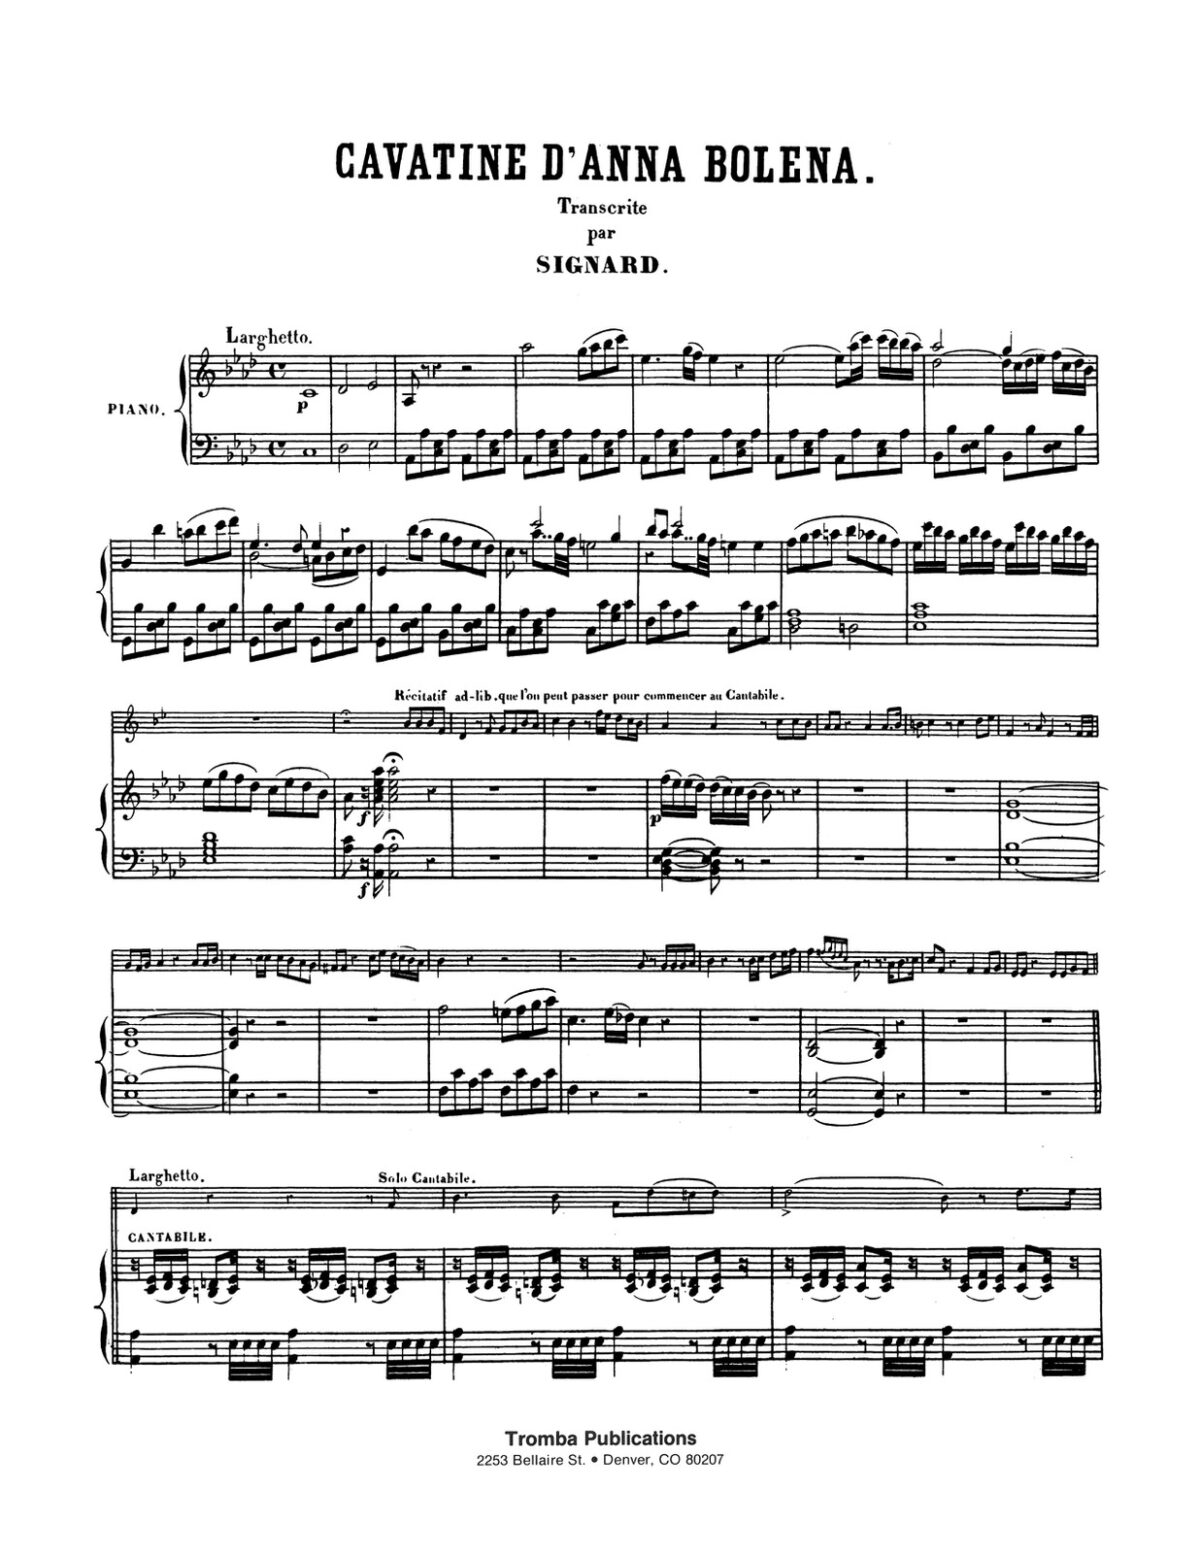 Donizetti arr. Signard, Variations on Cavatine d'Anna Bolena for Trumpet and Piano-p5